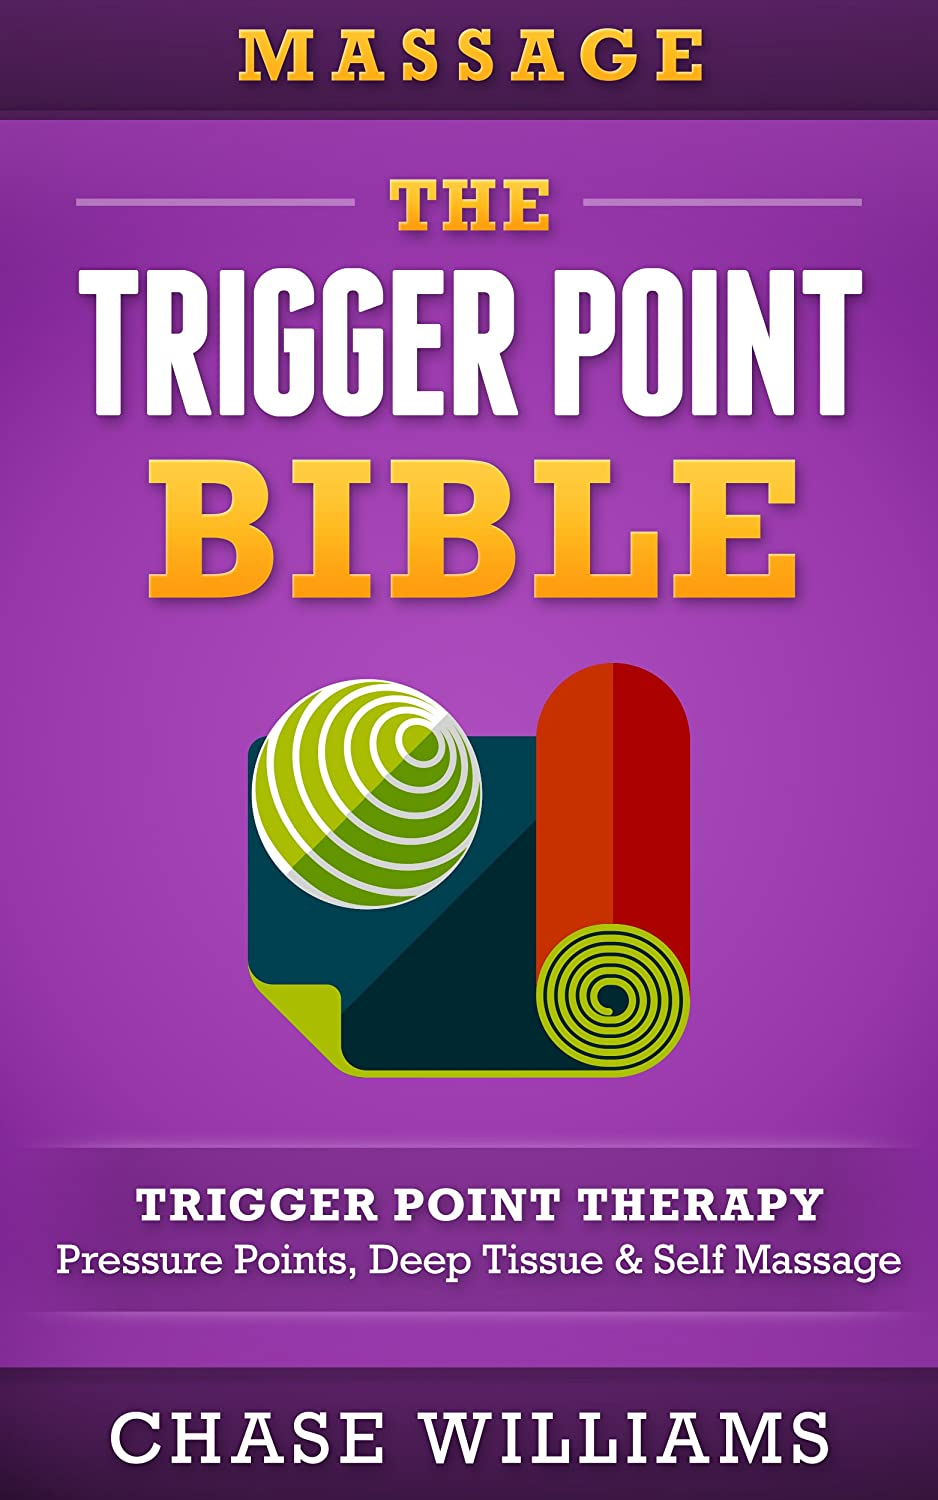 Massage: The Trigger Point Bible: Trigger Point Therapy